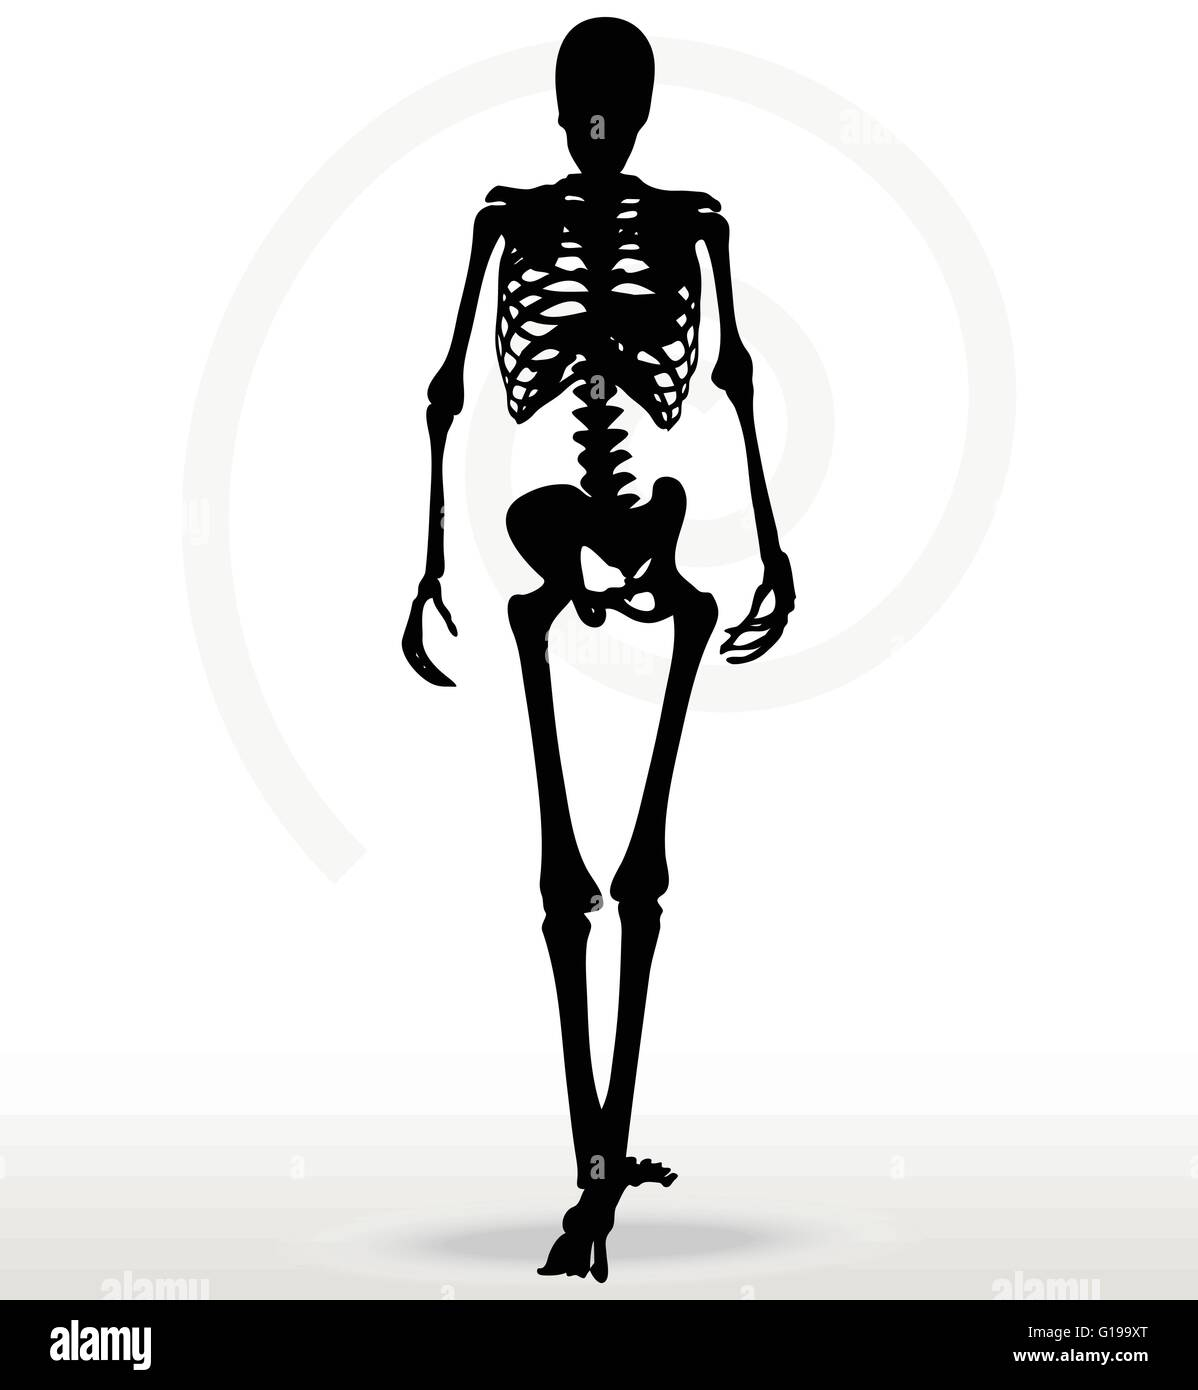 Vector Image - skeleton silhouette in walk pose isolated on white background - Stock Vector